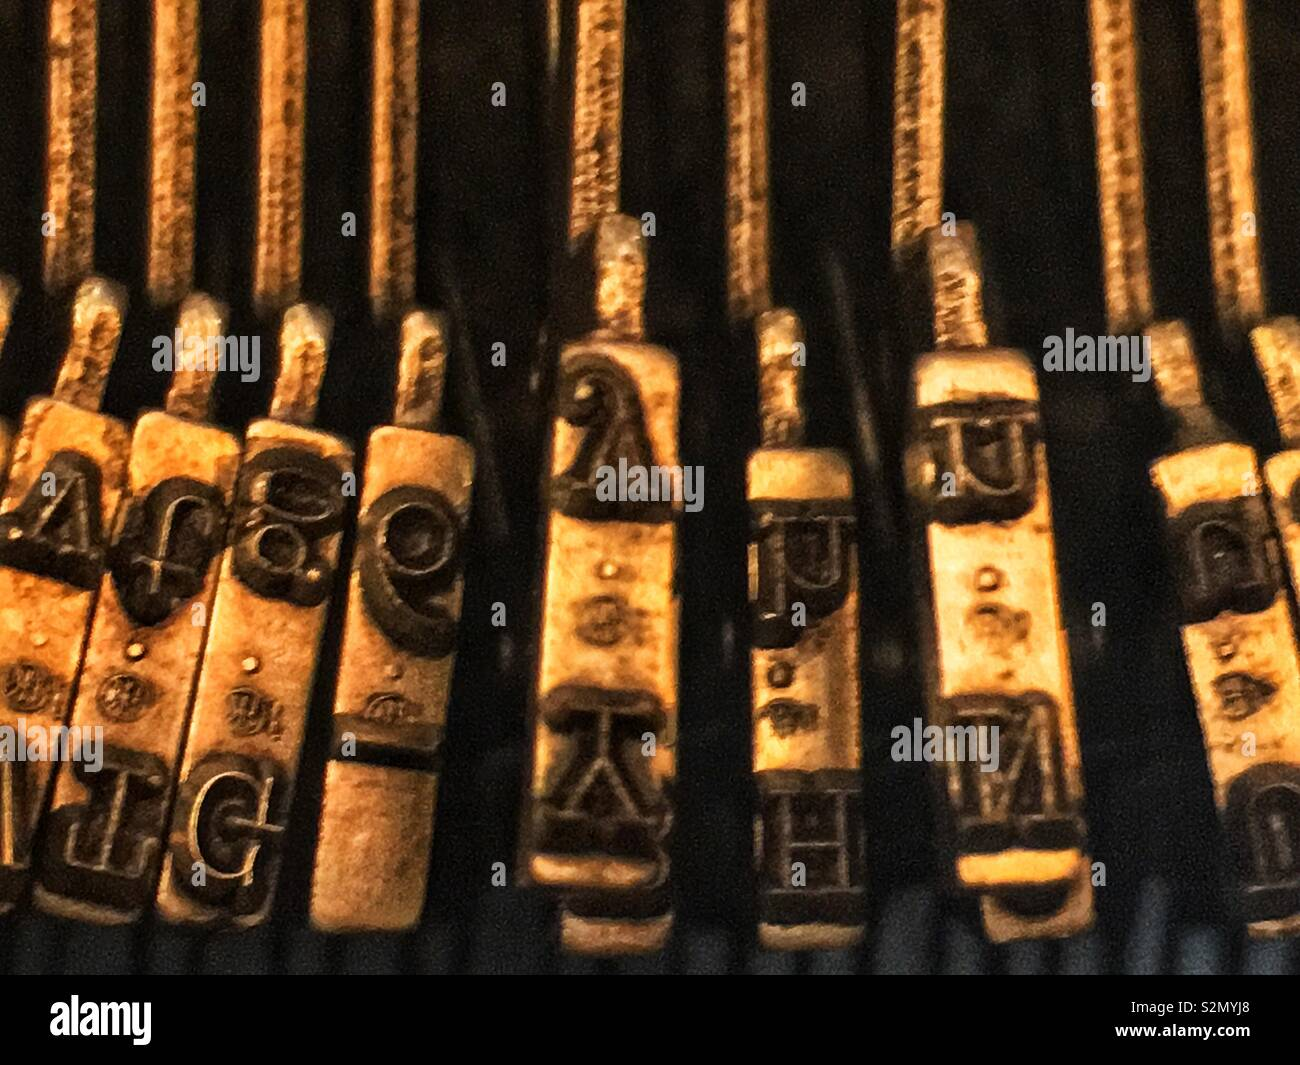 Soft focus Closeup of letter printing keys in an antique typewriter. - Stock Image